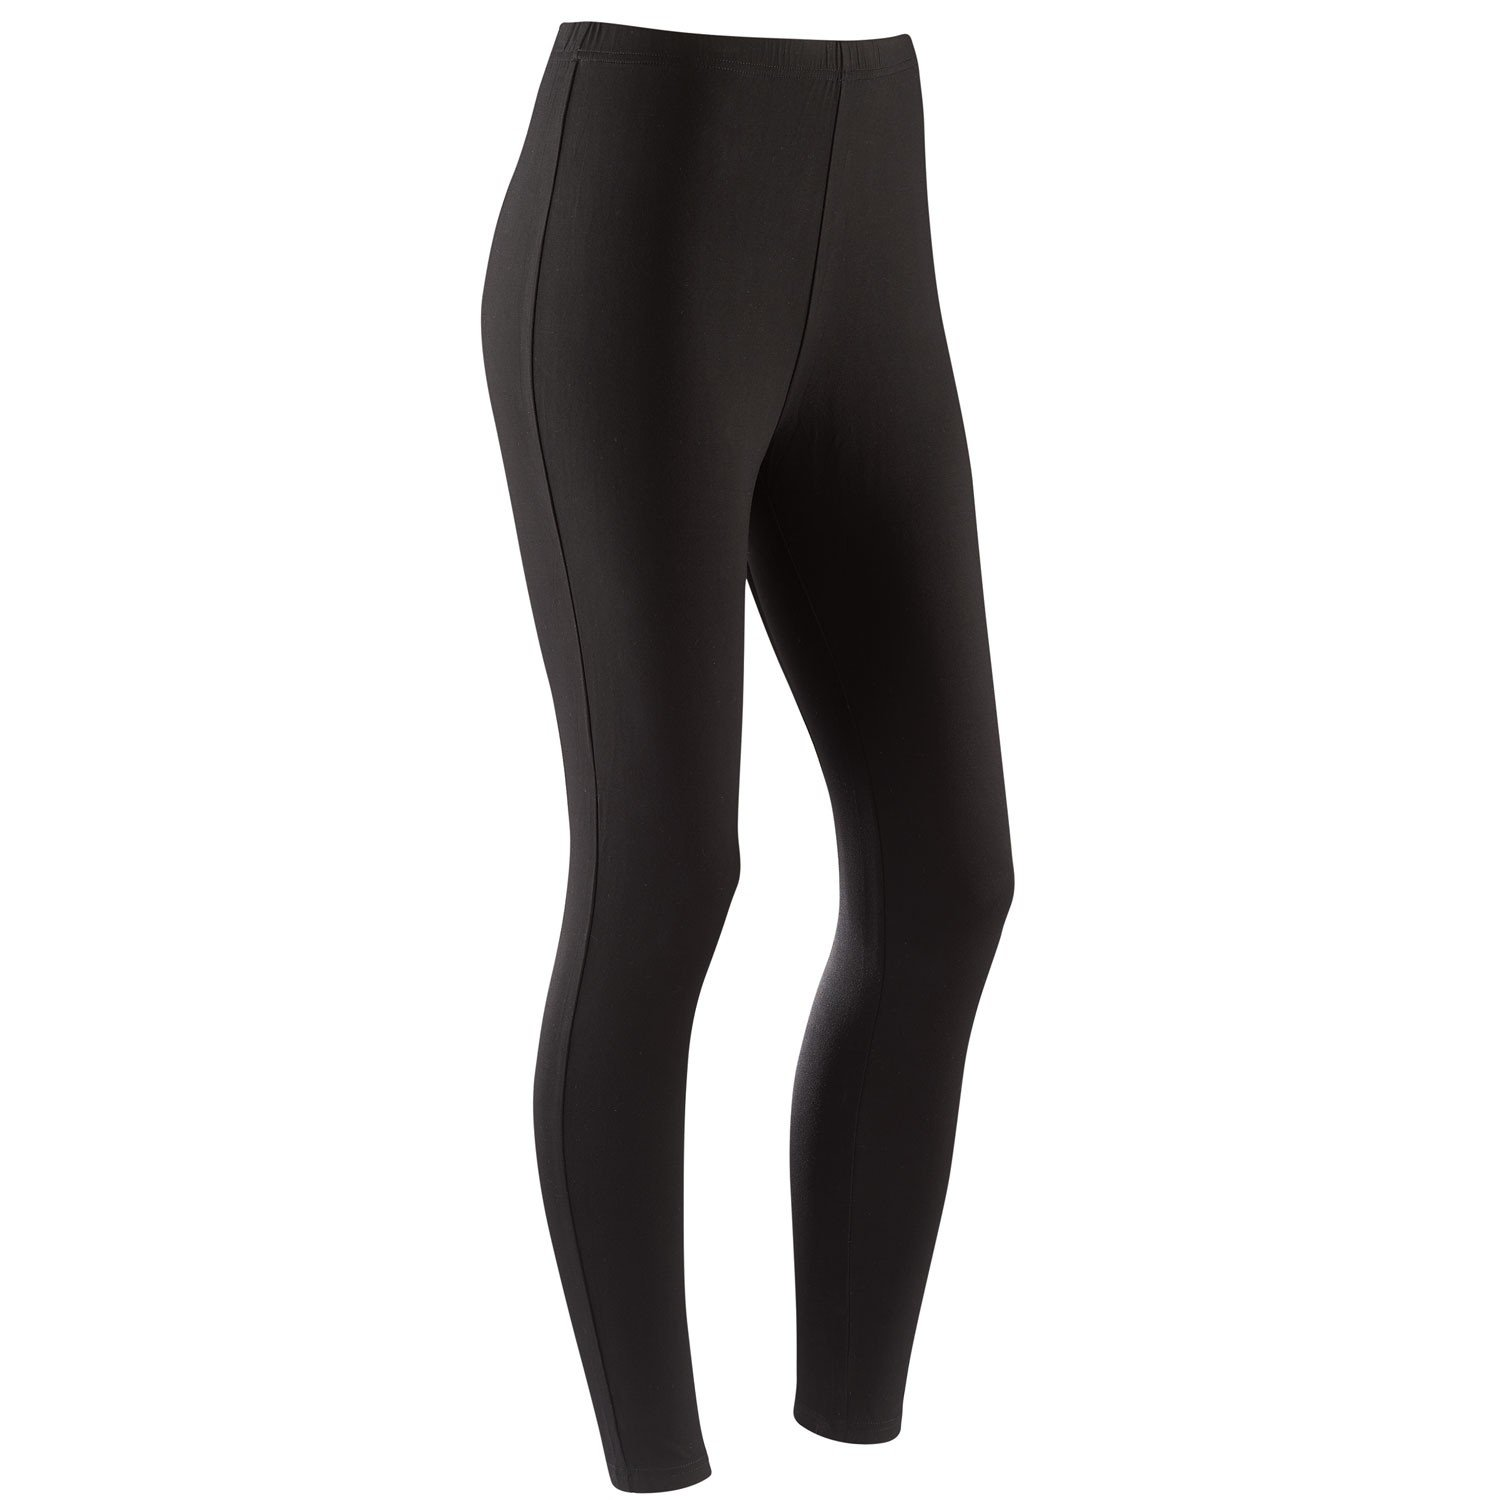 Women's Bamboo Leggings - Super Soft Moisture Wicking Bamboo Fiber - Black - 3X